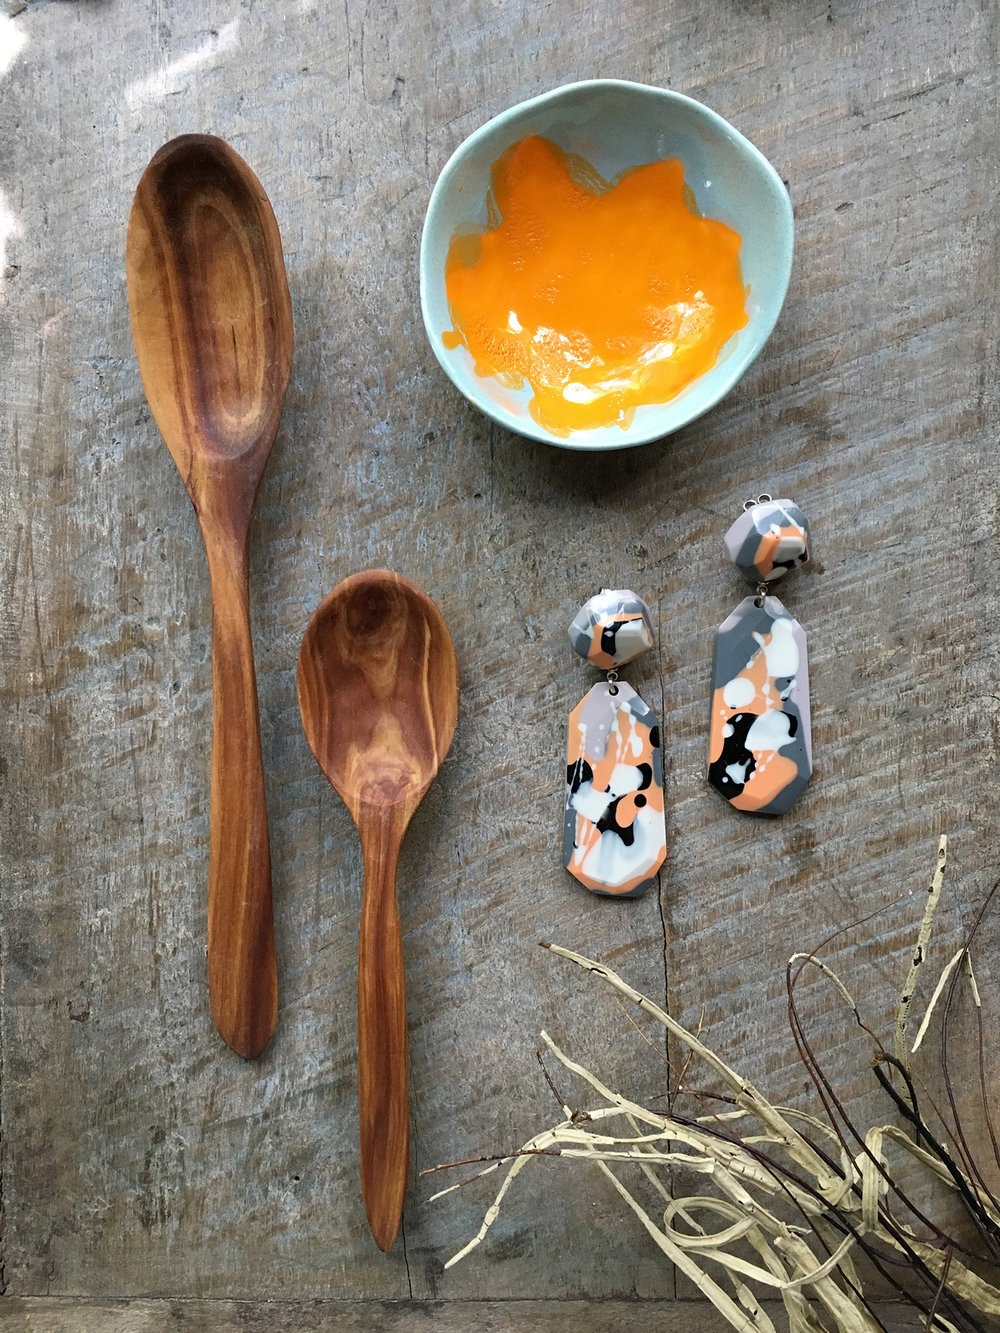 timber utensils - elk craft  /   resin earrings - flock curiosity assembly  /  ceramic dish - elnaz nourizadeh